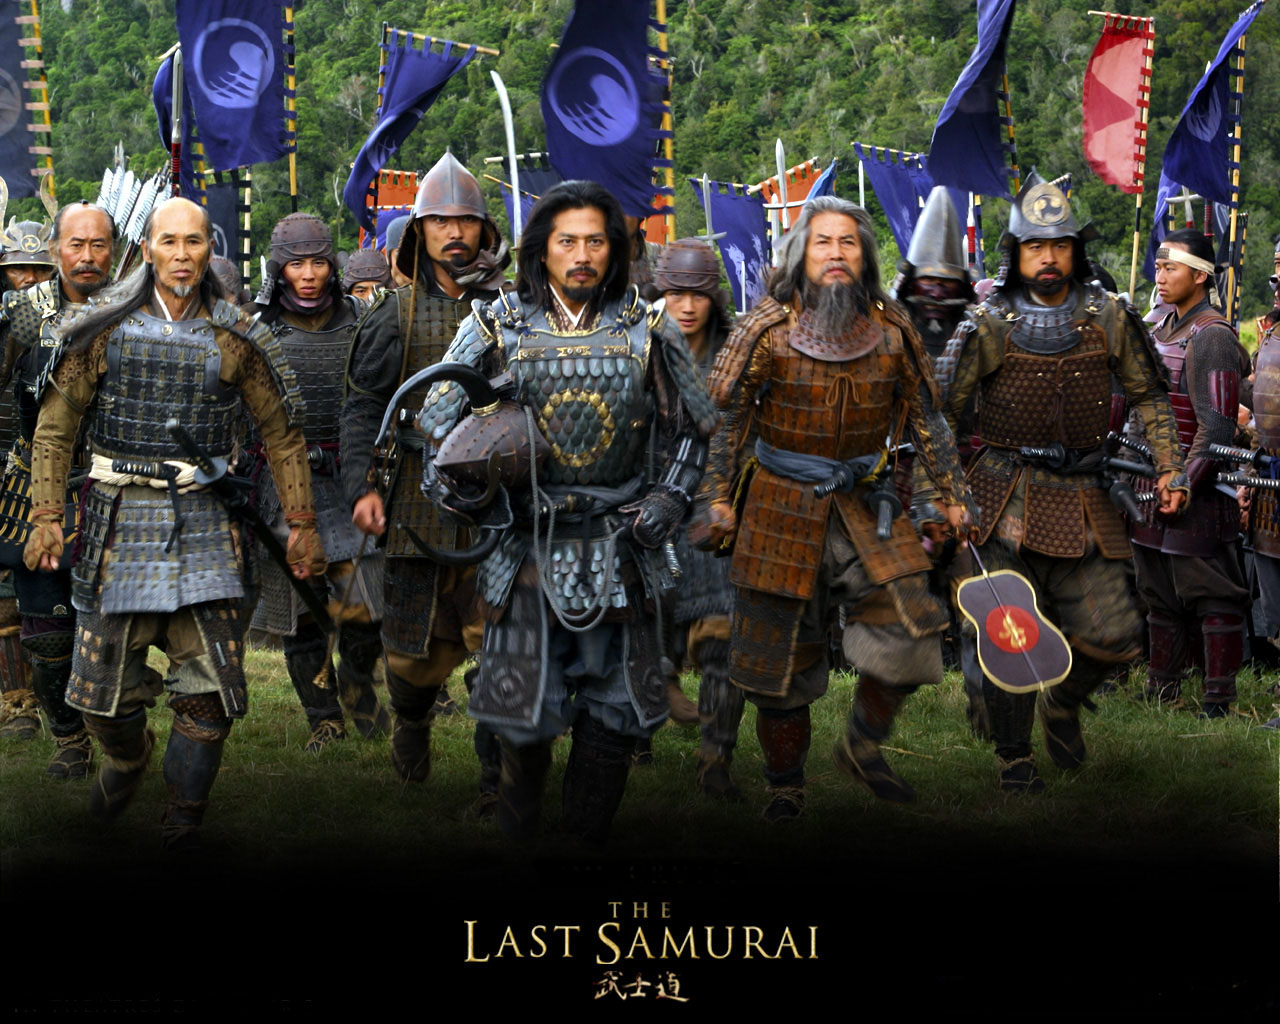 cultural analysis of the last samurai film The last samurai film historical analysis japan should become more westernized so that it could prosper economically and protect its territorial independence.